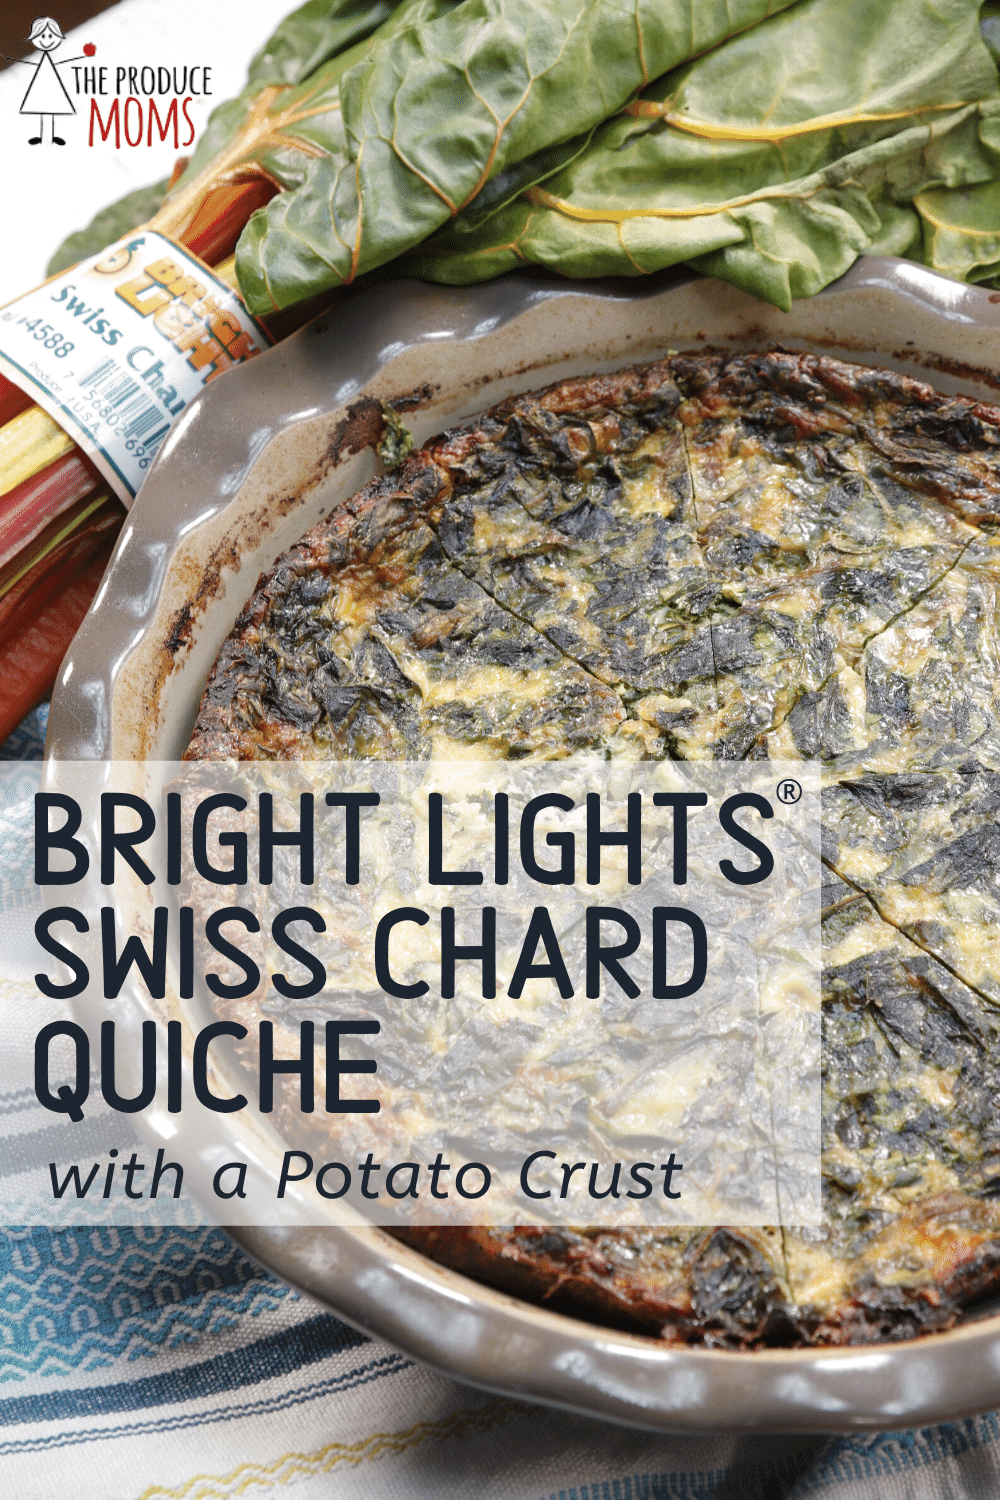 Bright Lights® Swiss Chard Quiche with Potato Crust